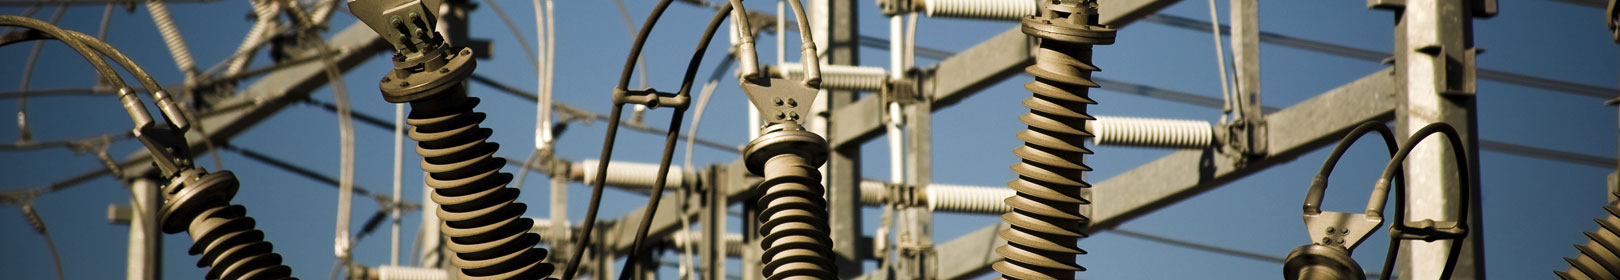 Lighthouse Electric | Markets | Substations/Voltage